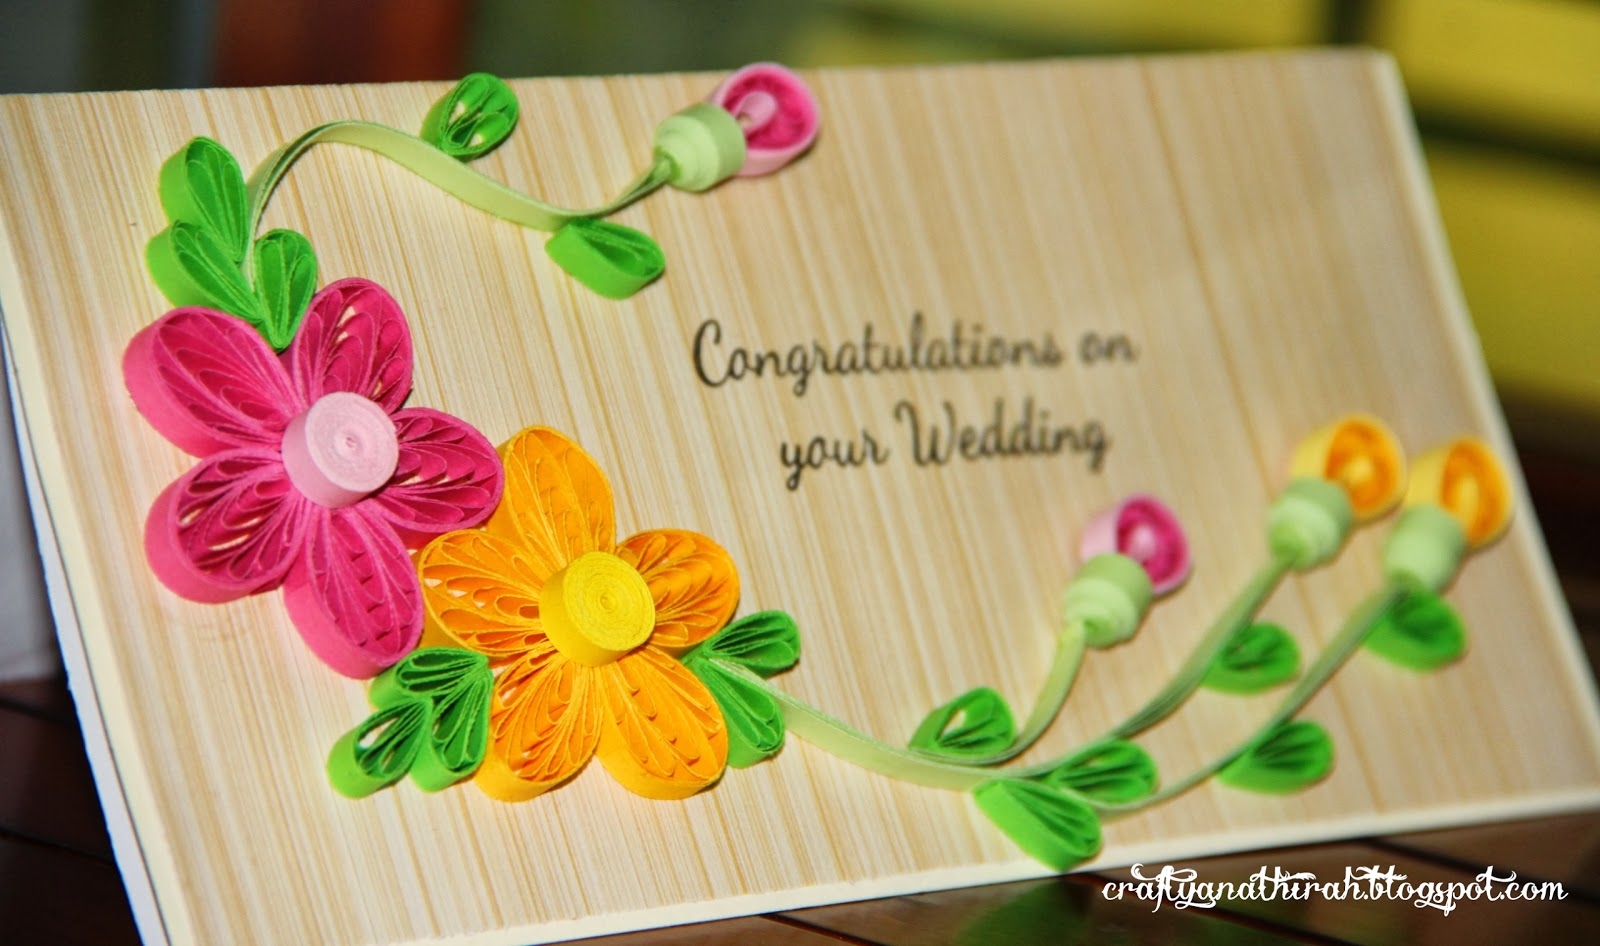 Wedding wishes for friend wedding ideas wedding wishes cards for friend surprise her friends with displaying 20 images for wedding wishes for a friend marriage wishes quotes wallpapers and kristyandbryce Gallery